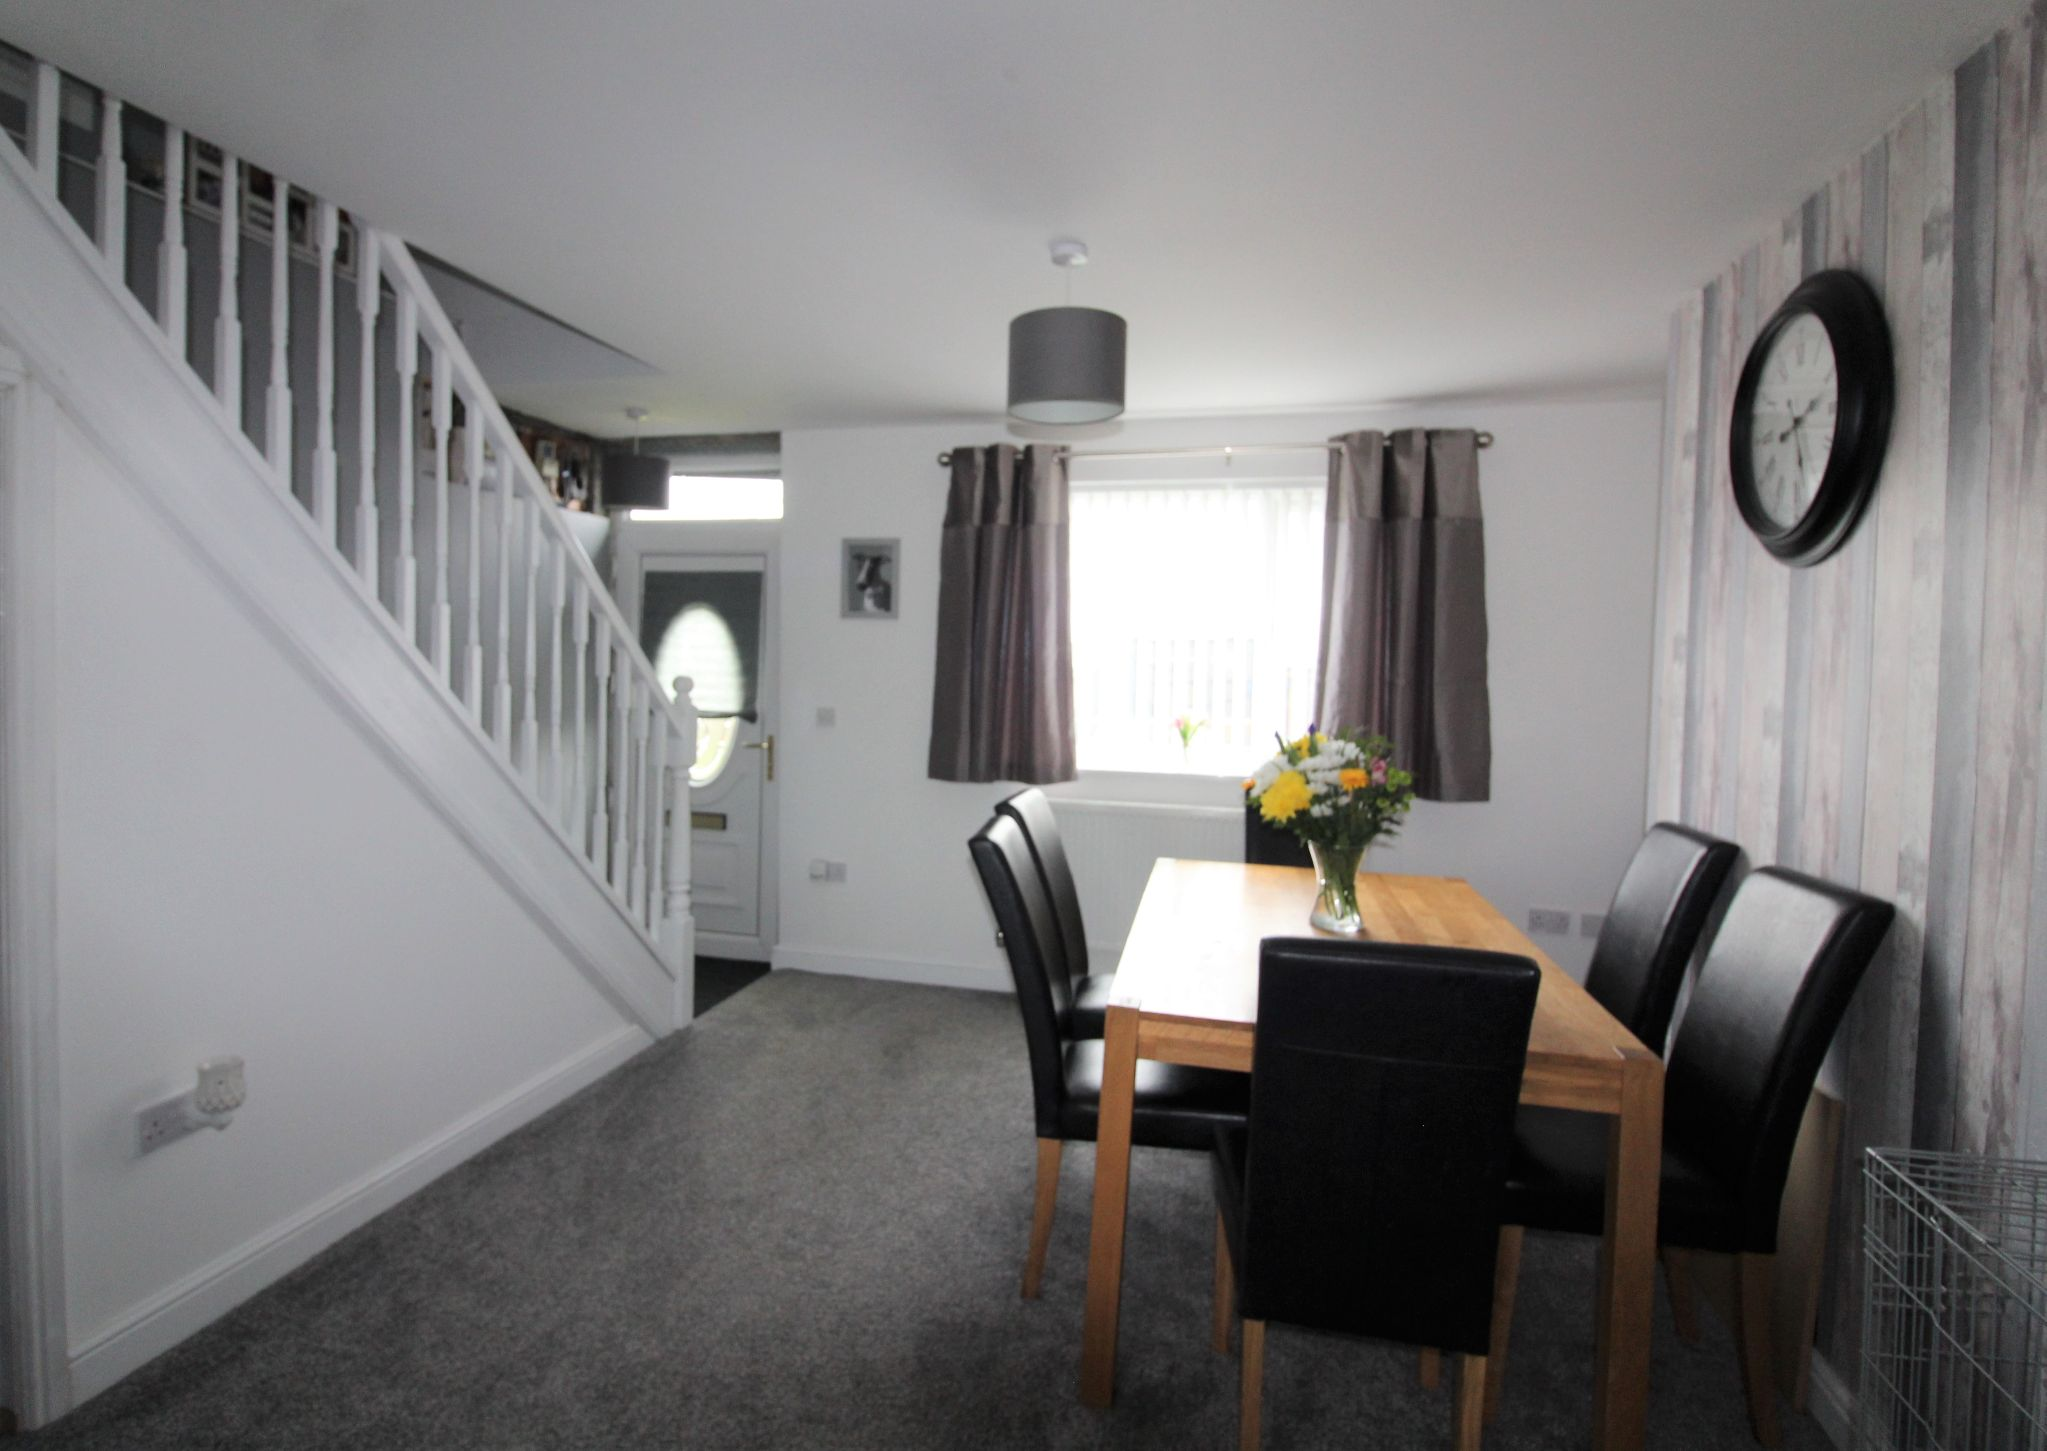 3 bedroom mid terraced house Sale Agreed in Roddymoor - Photograph 2.